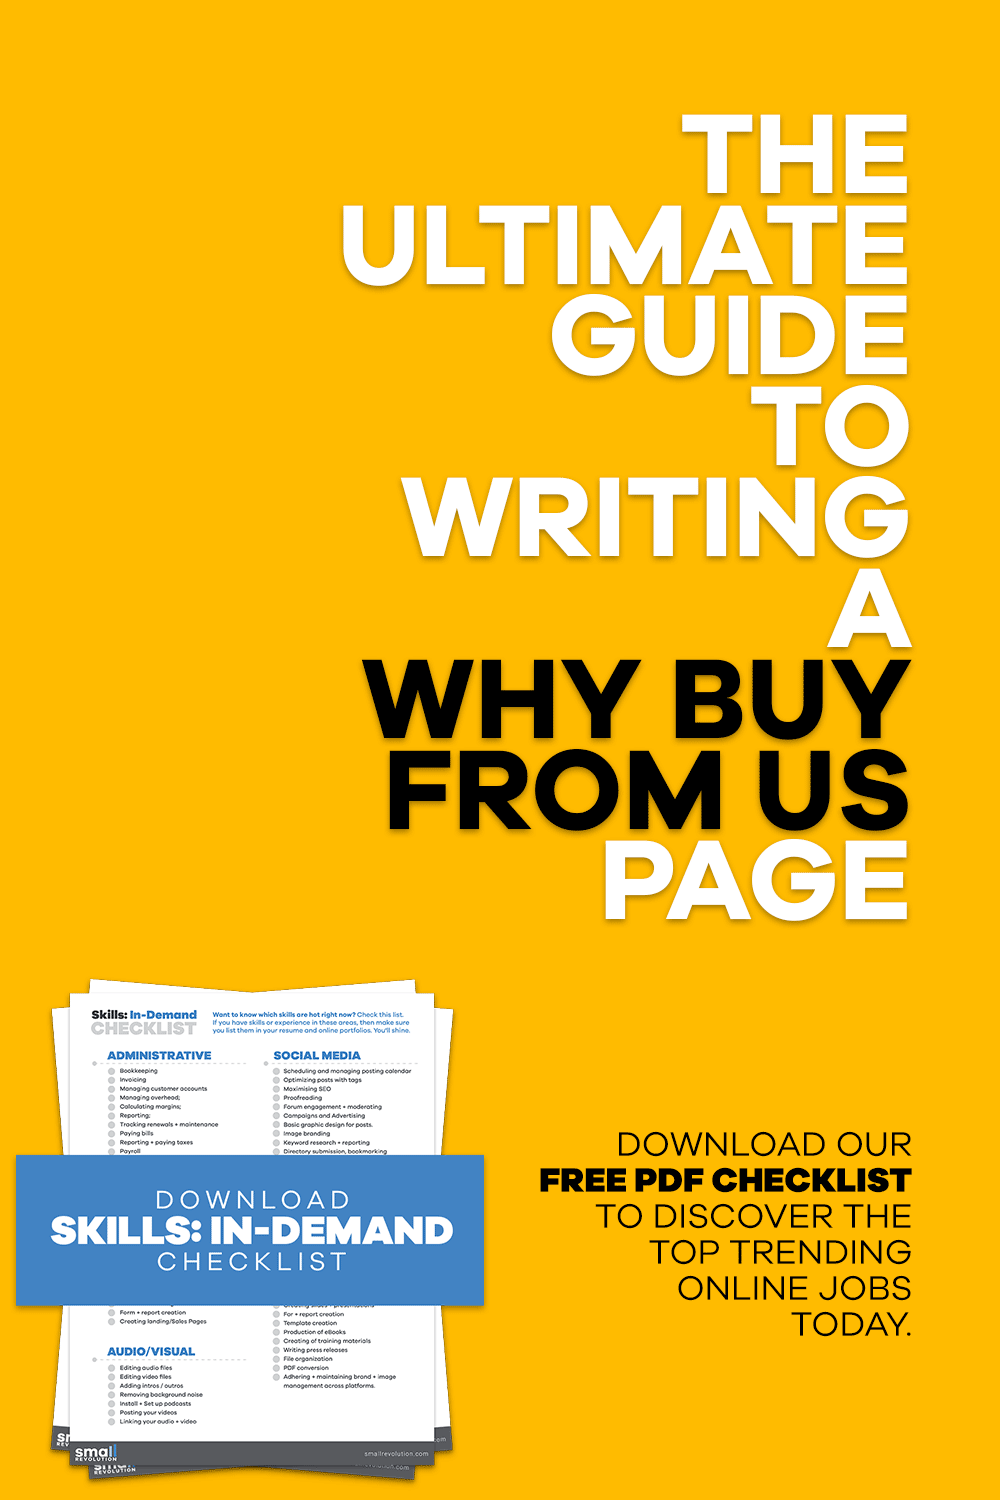 The Ultimate Guide to Writing a Why Buy From Us Page